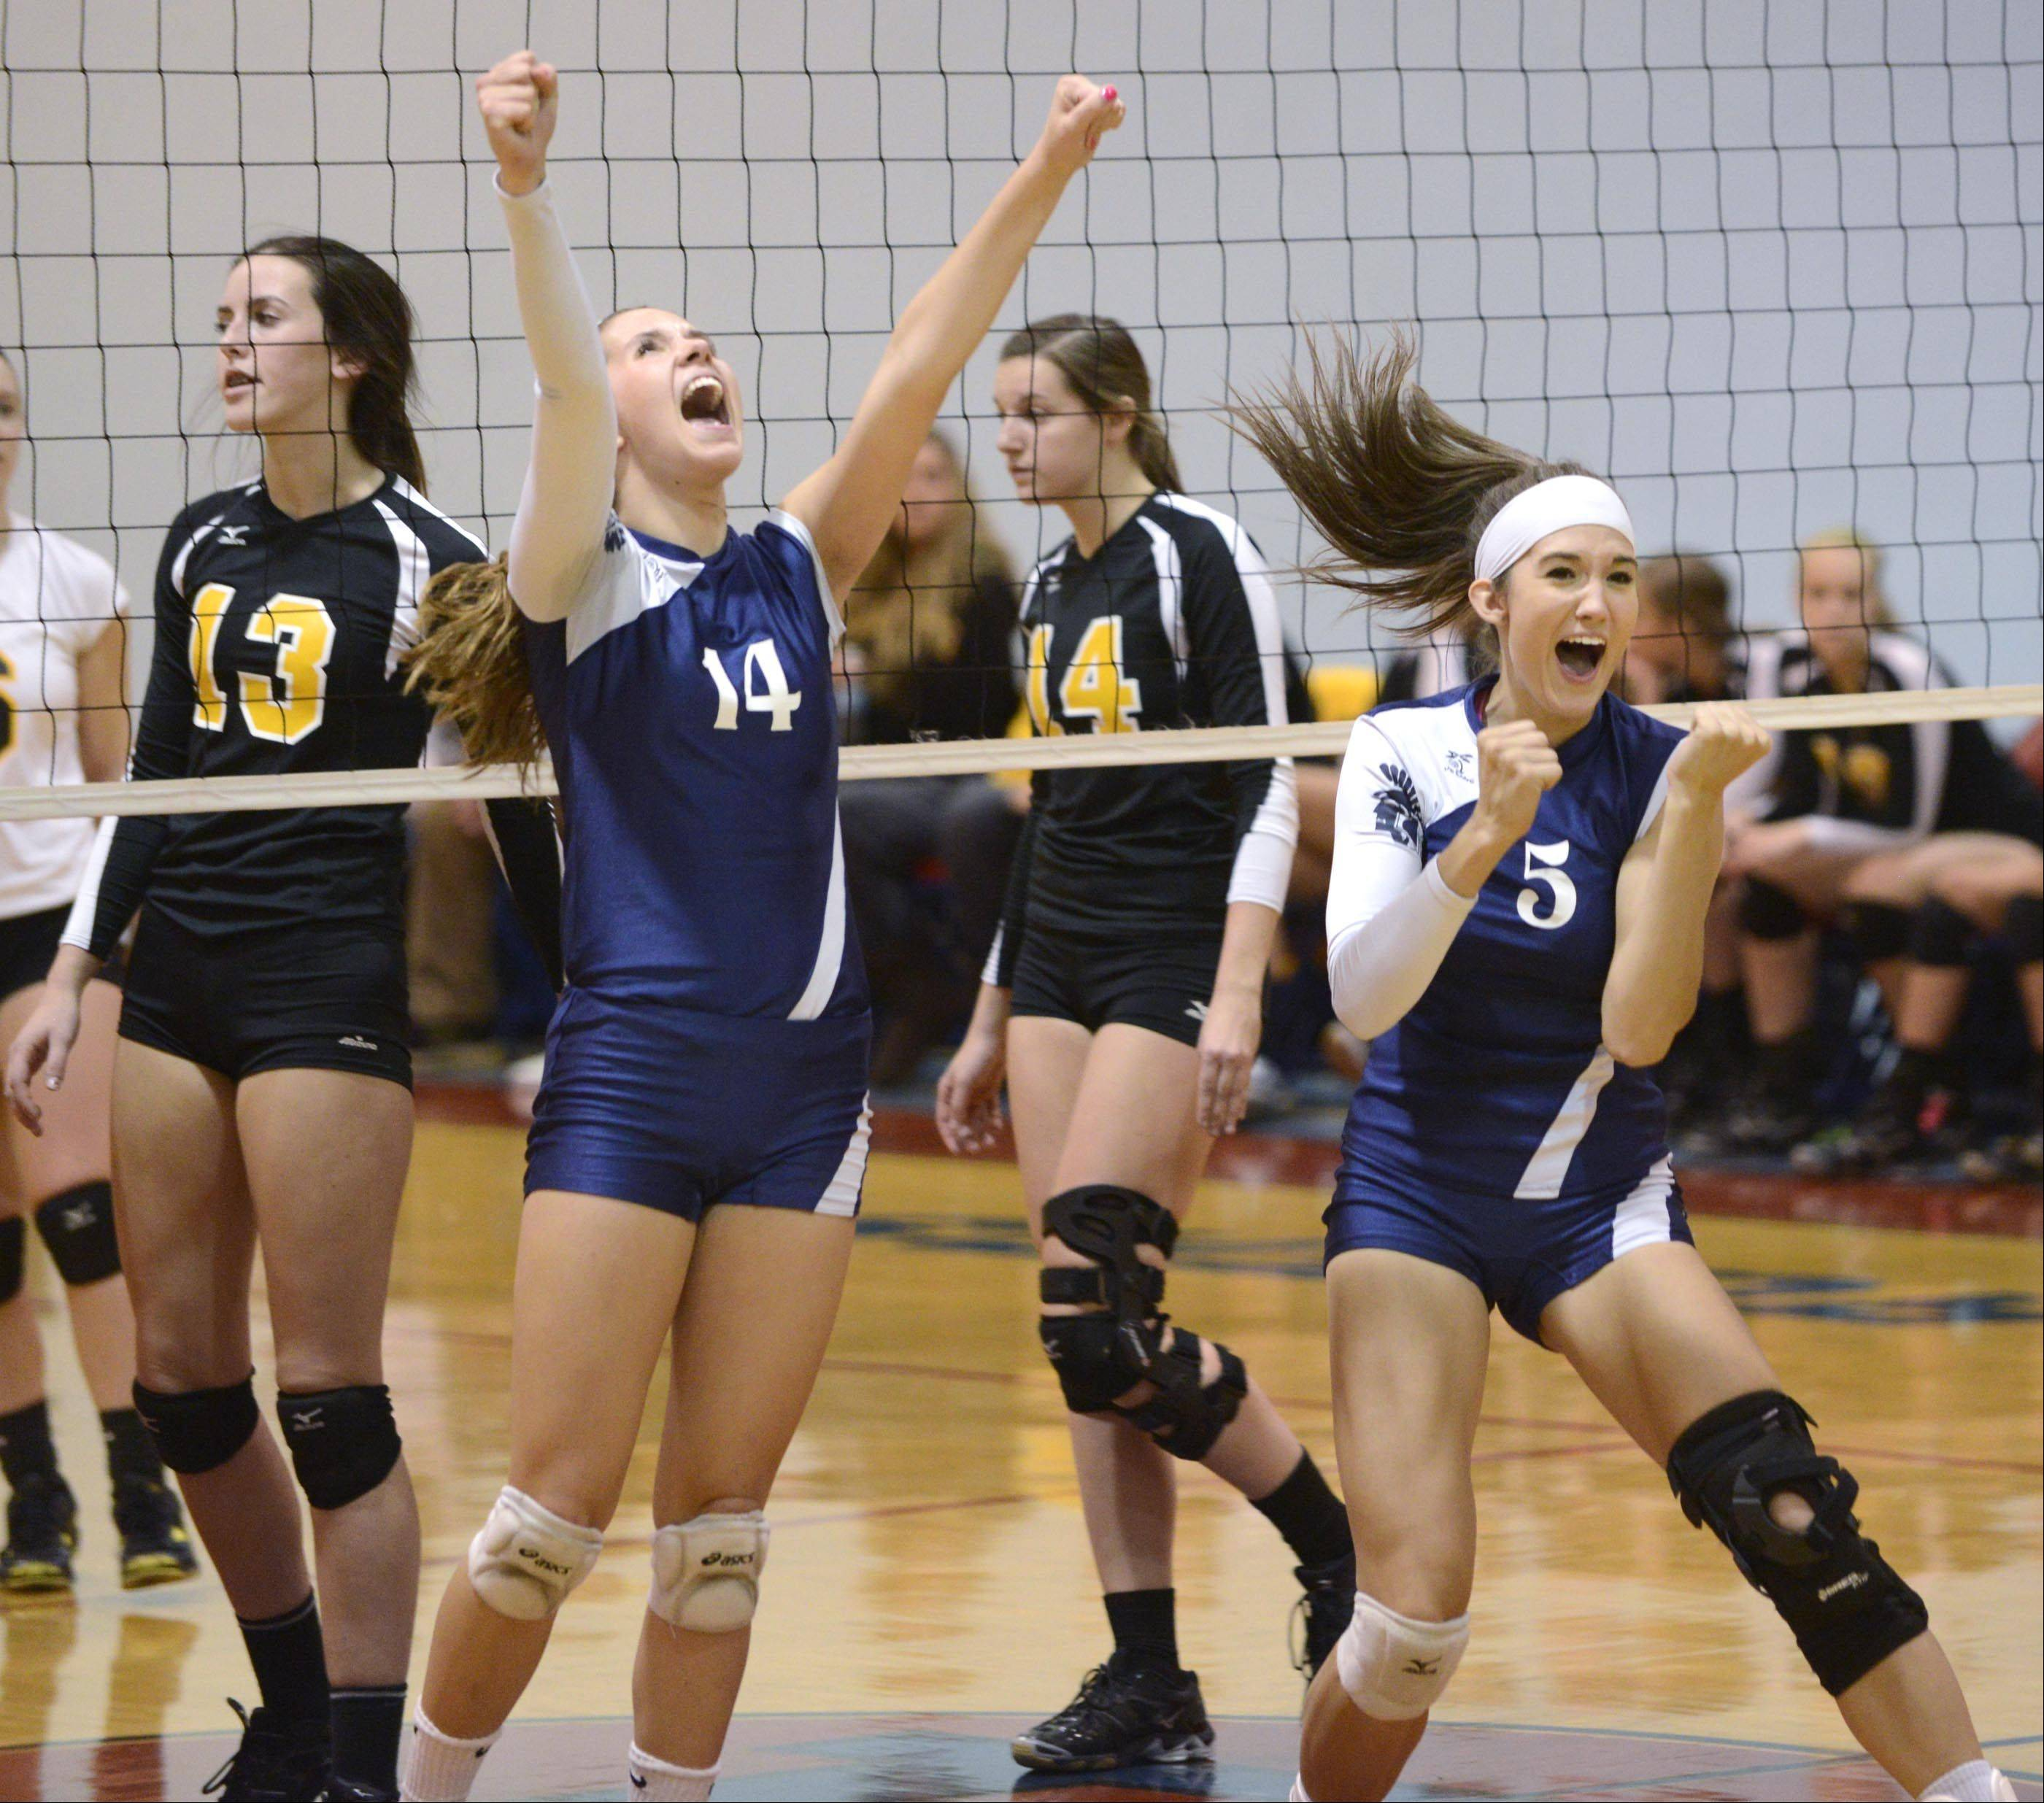 Cary-Grove's Sarah Graham and Kayli Trausch, right, exhale in the winning point as Jacobs' Katie Mahoney and Allie Campbell react on the other side of the net Monday in Carpentersville.